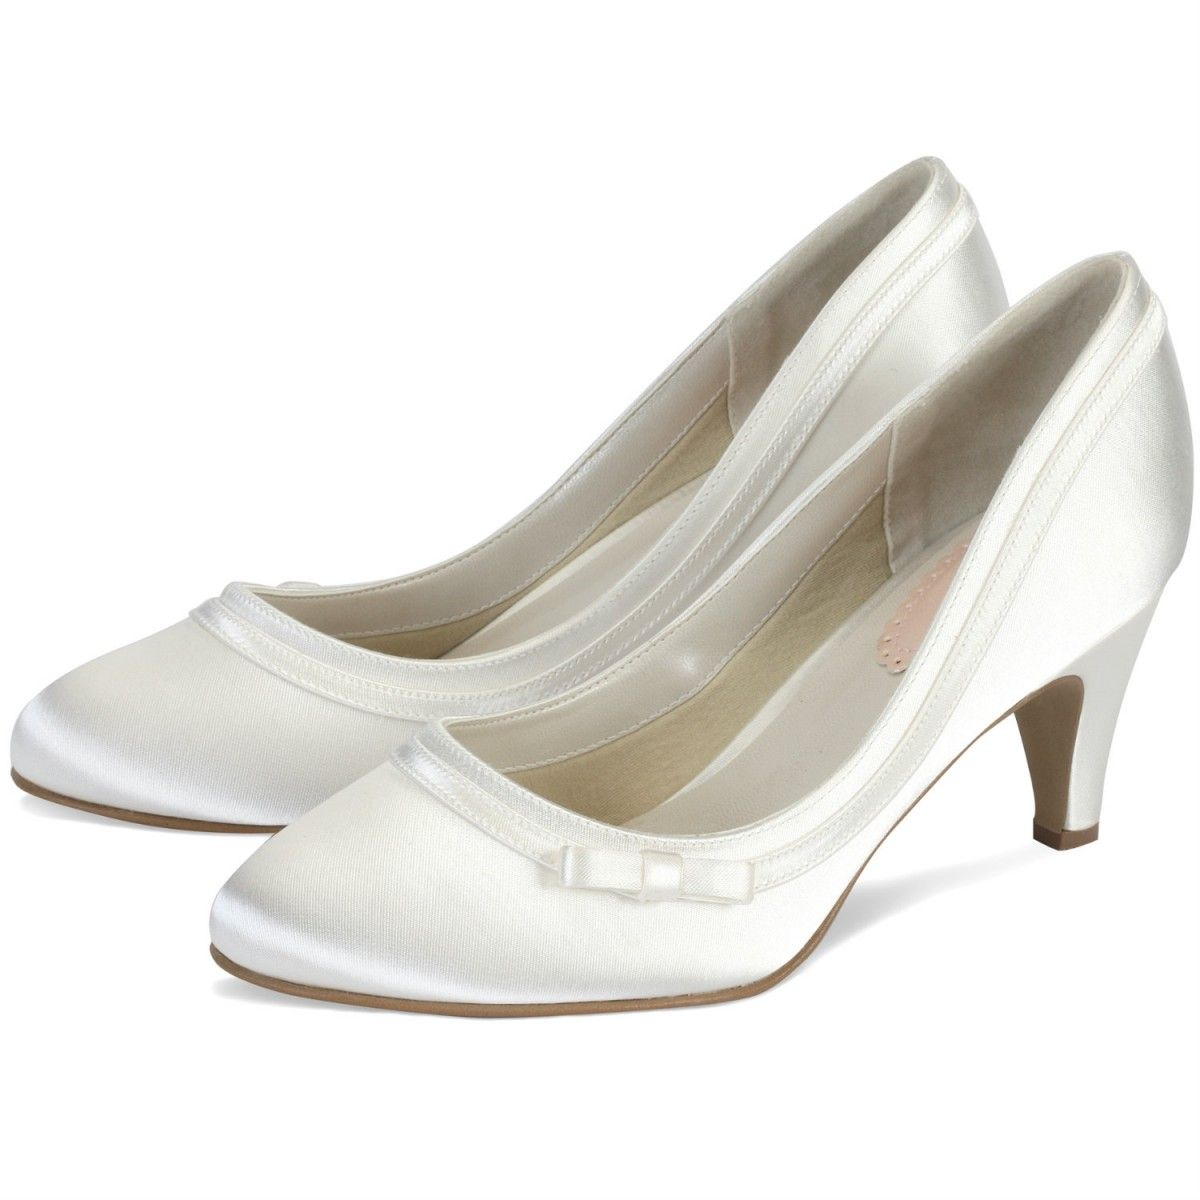 Dahlia By Pink For Paradox London Ivory Or White Dyeable Low Heel Vintage Wedding Occasion Shoes Vegan Shoe Style